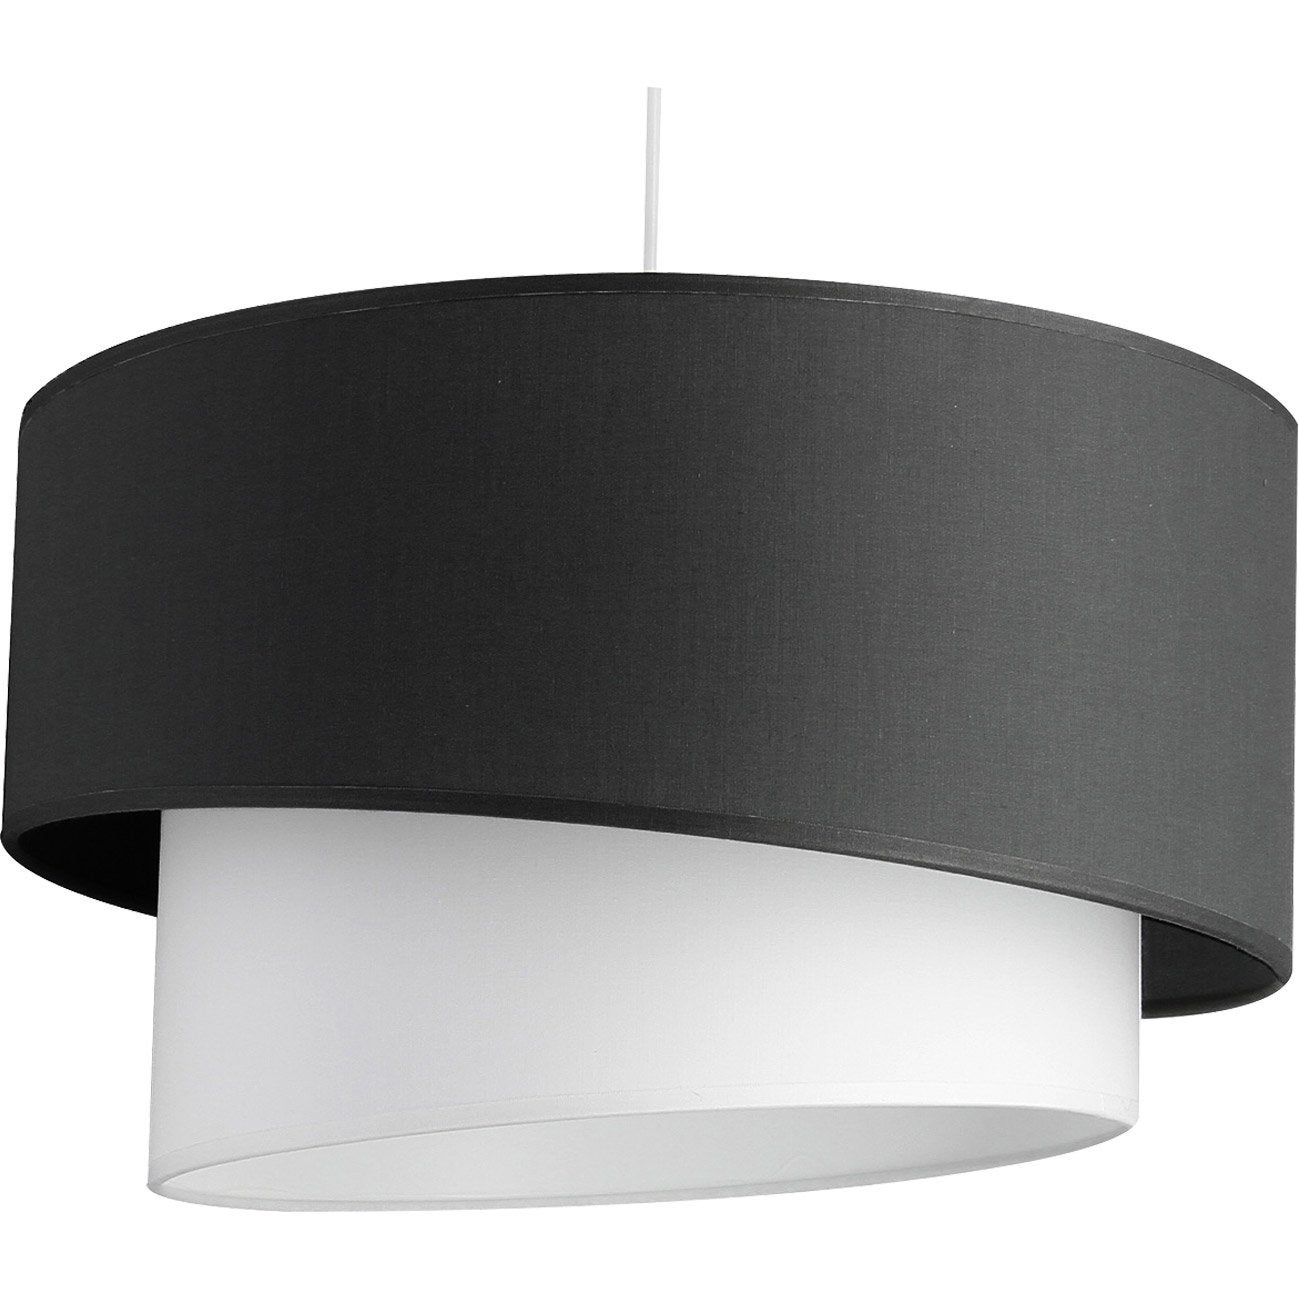 Suspension, e27 design Ionos coton gris anthracite 1 x 60 W METROPOLIGHT